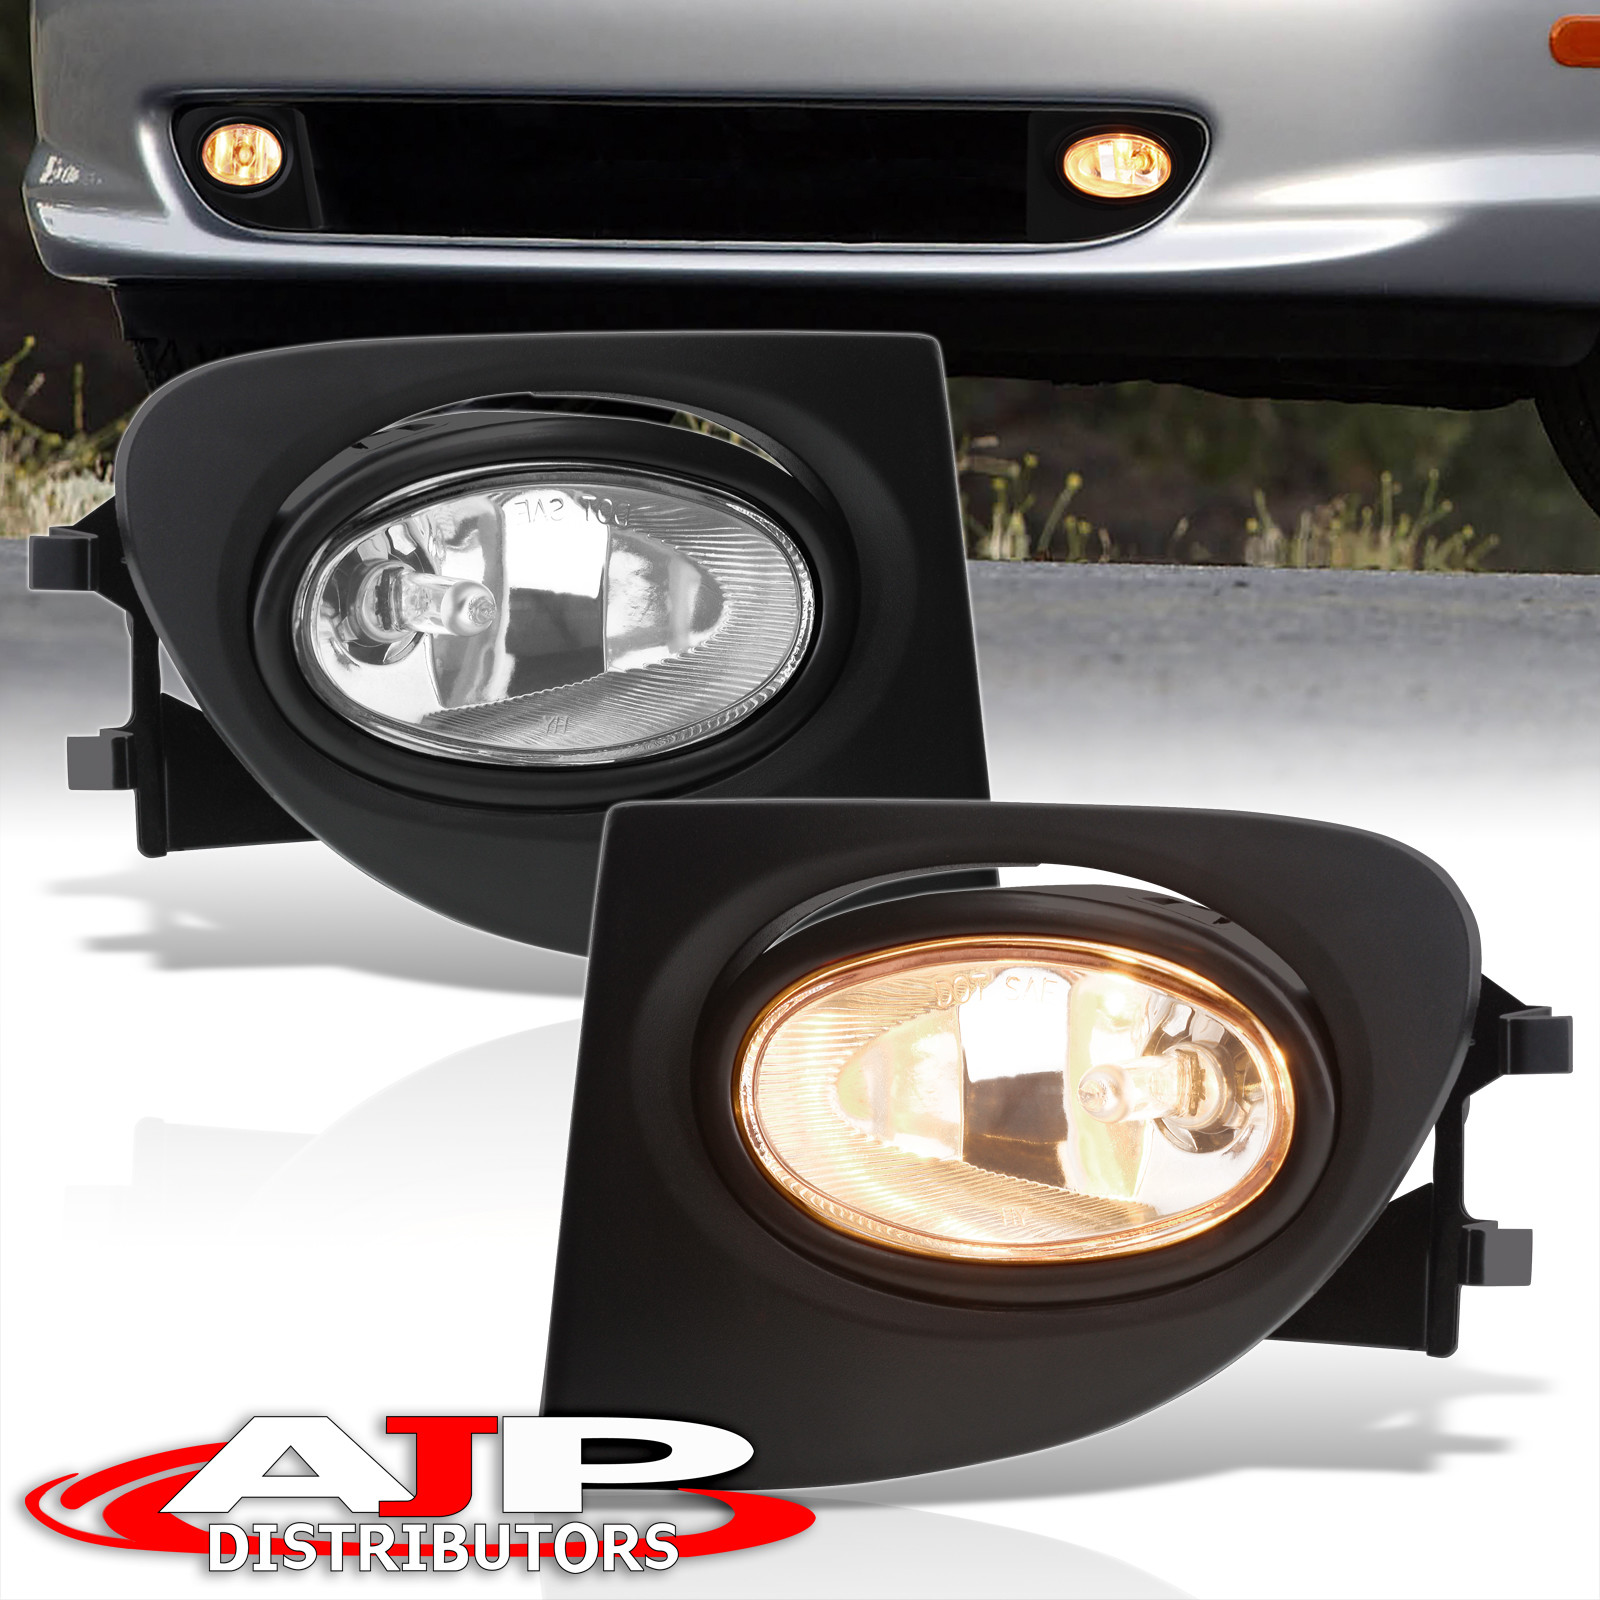 hight resolution of details about 02 05 civic ep3 hatchback si clear front driving fog lights lamp wiring harness